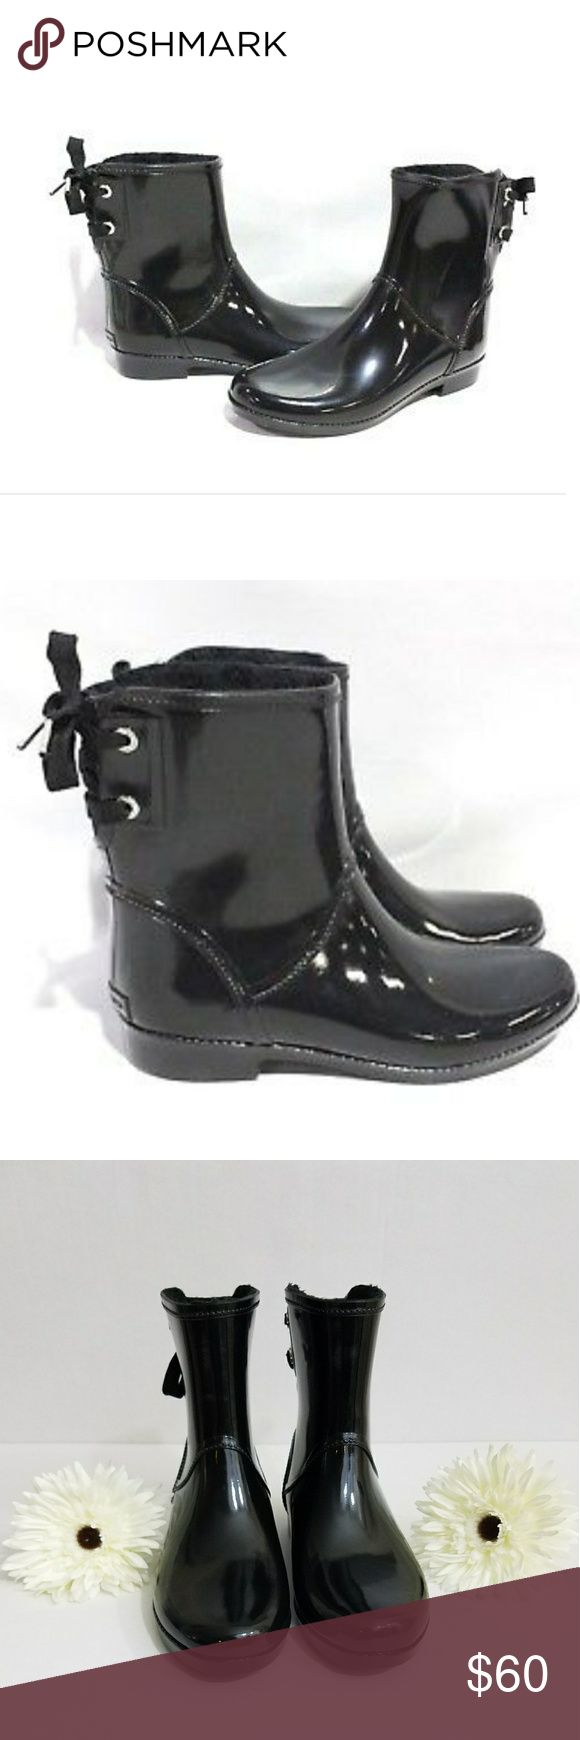 Michael Kors rain boots Classic Larson lace-back short rain boots. NWOB! Authentic! Brand New! Only tried on in store!  Size 6 Michael Kors Shoes Winter & Rain Boots